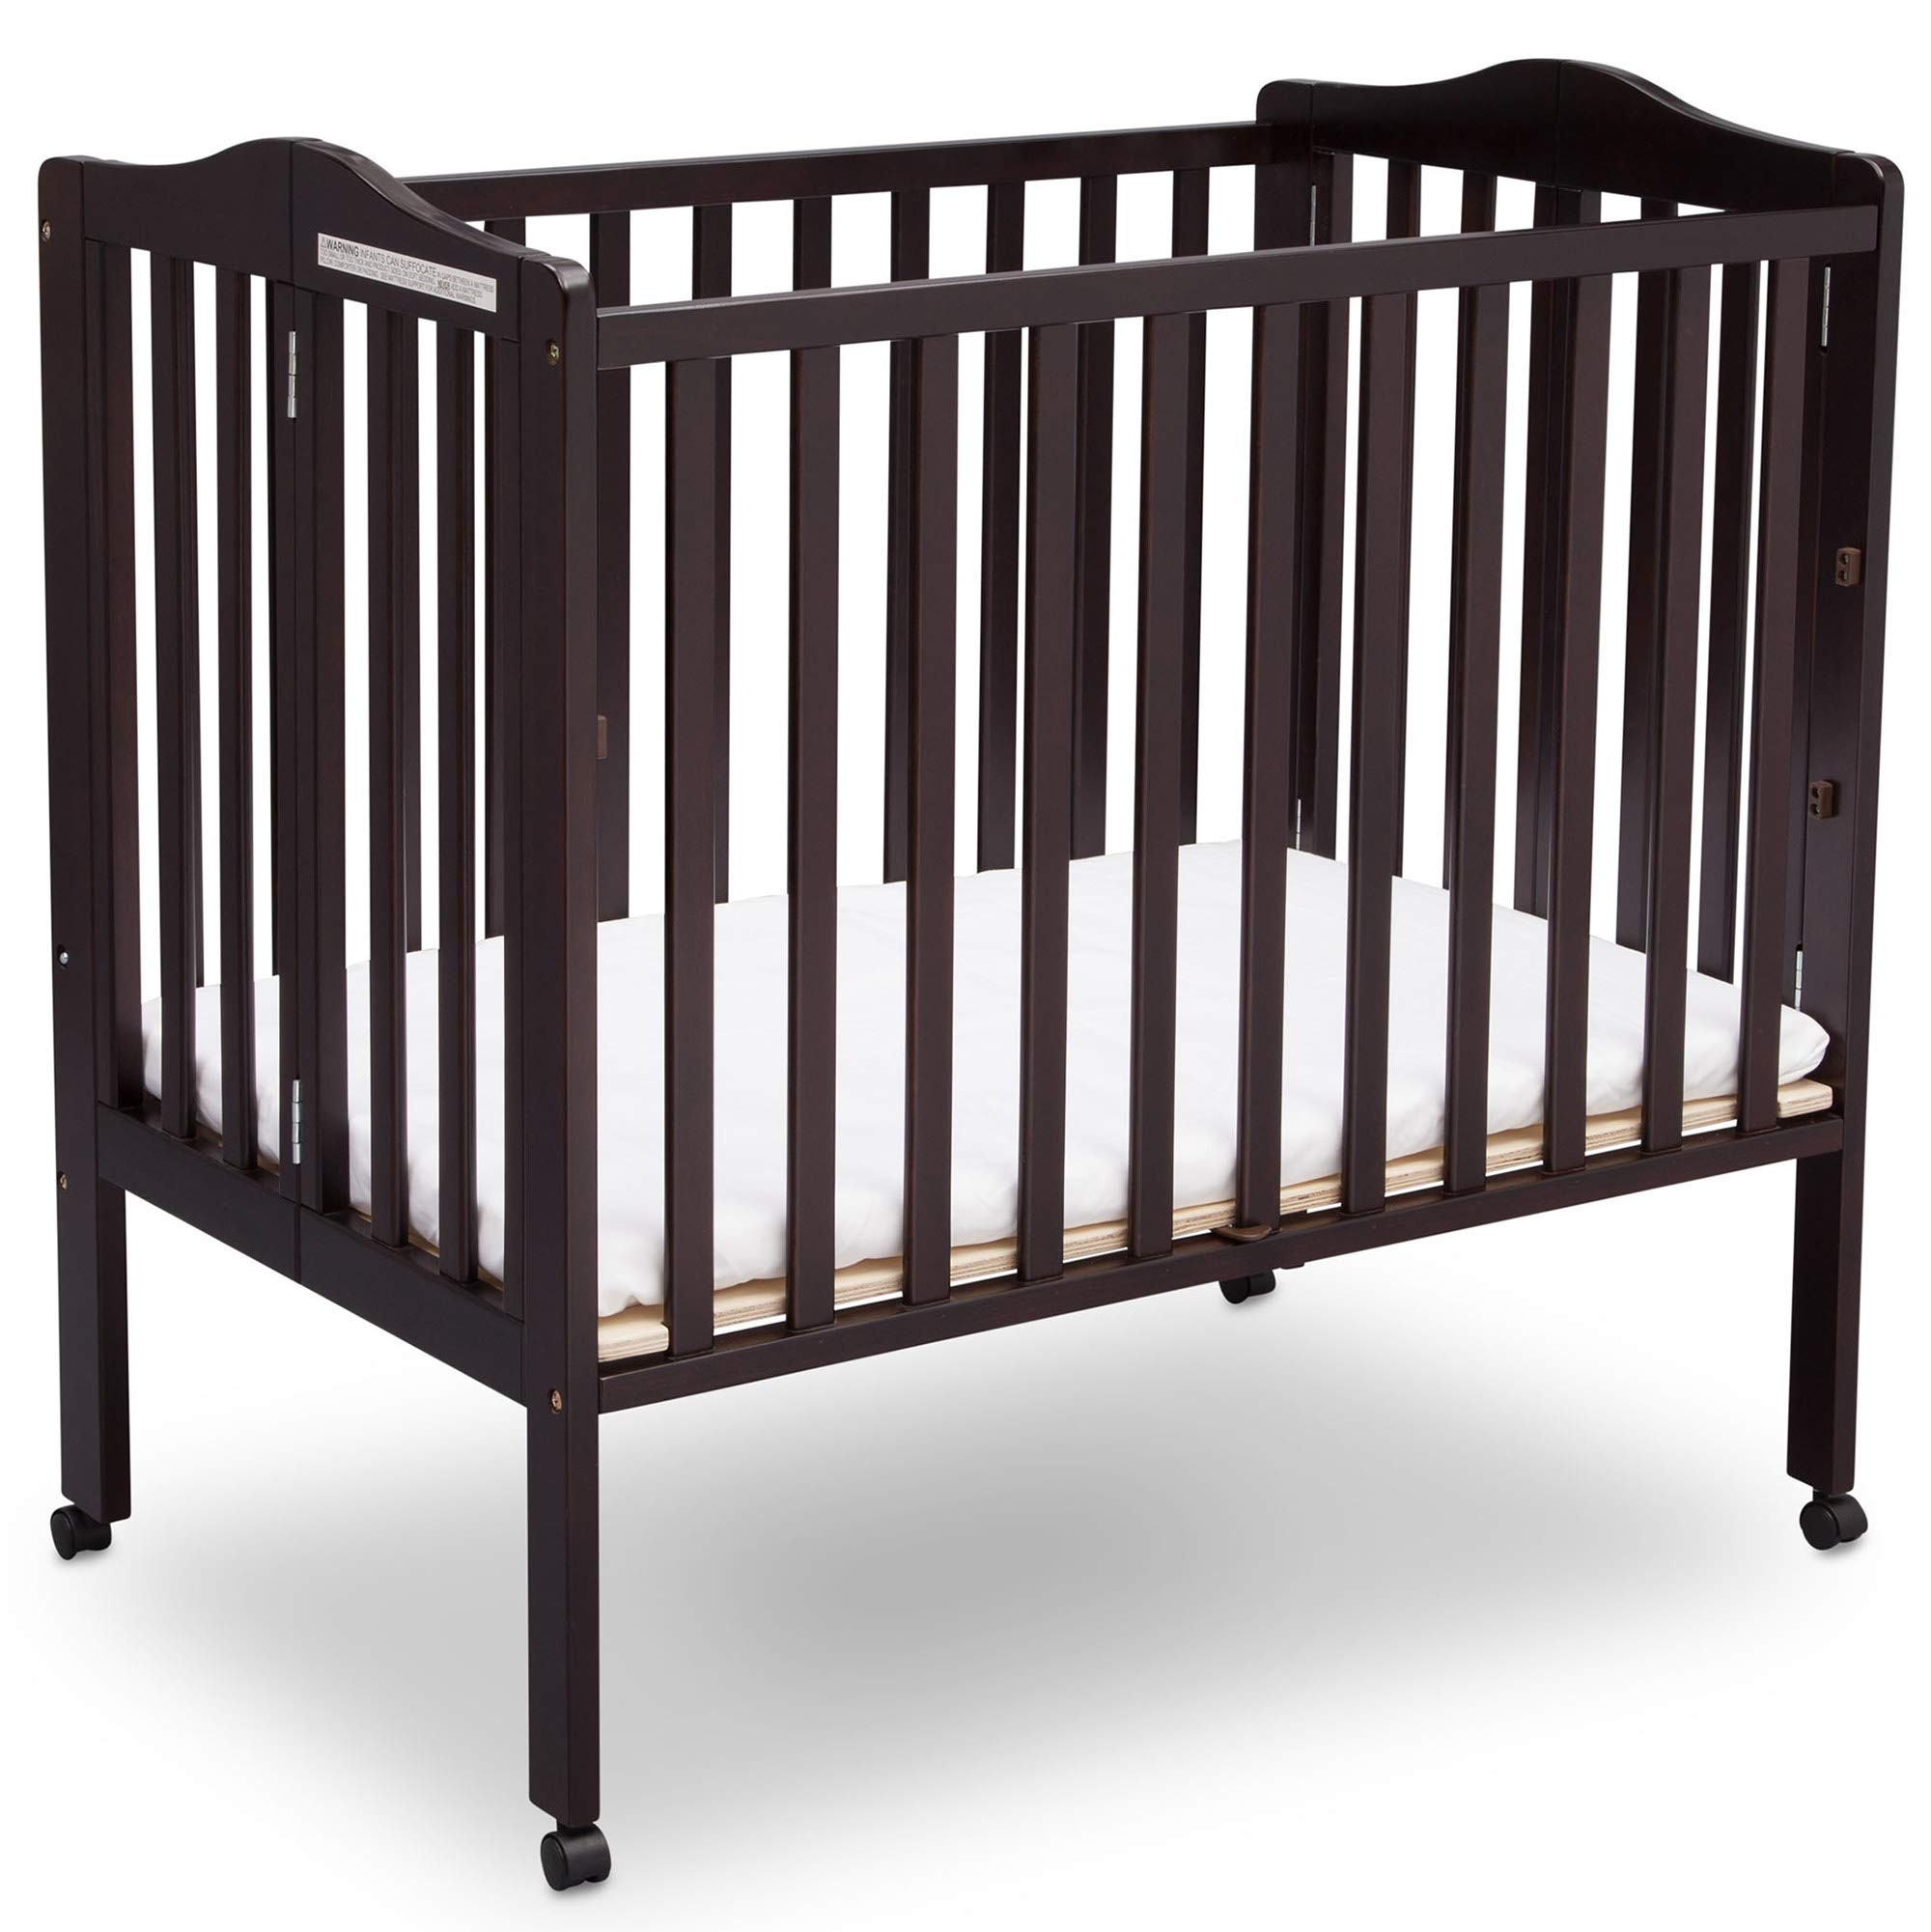 Delta Children Delta Children Folding Portable Mini Baby Crib with Mattress, Dark Espresso, Dark Espresso